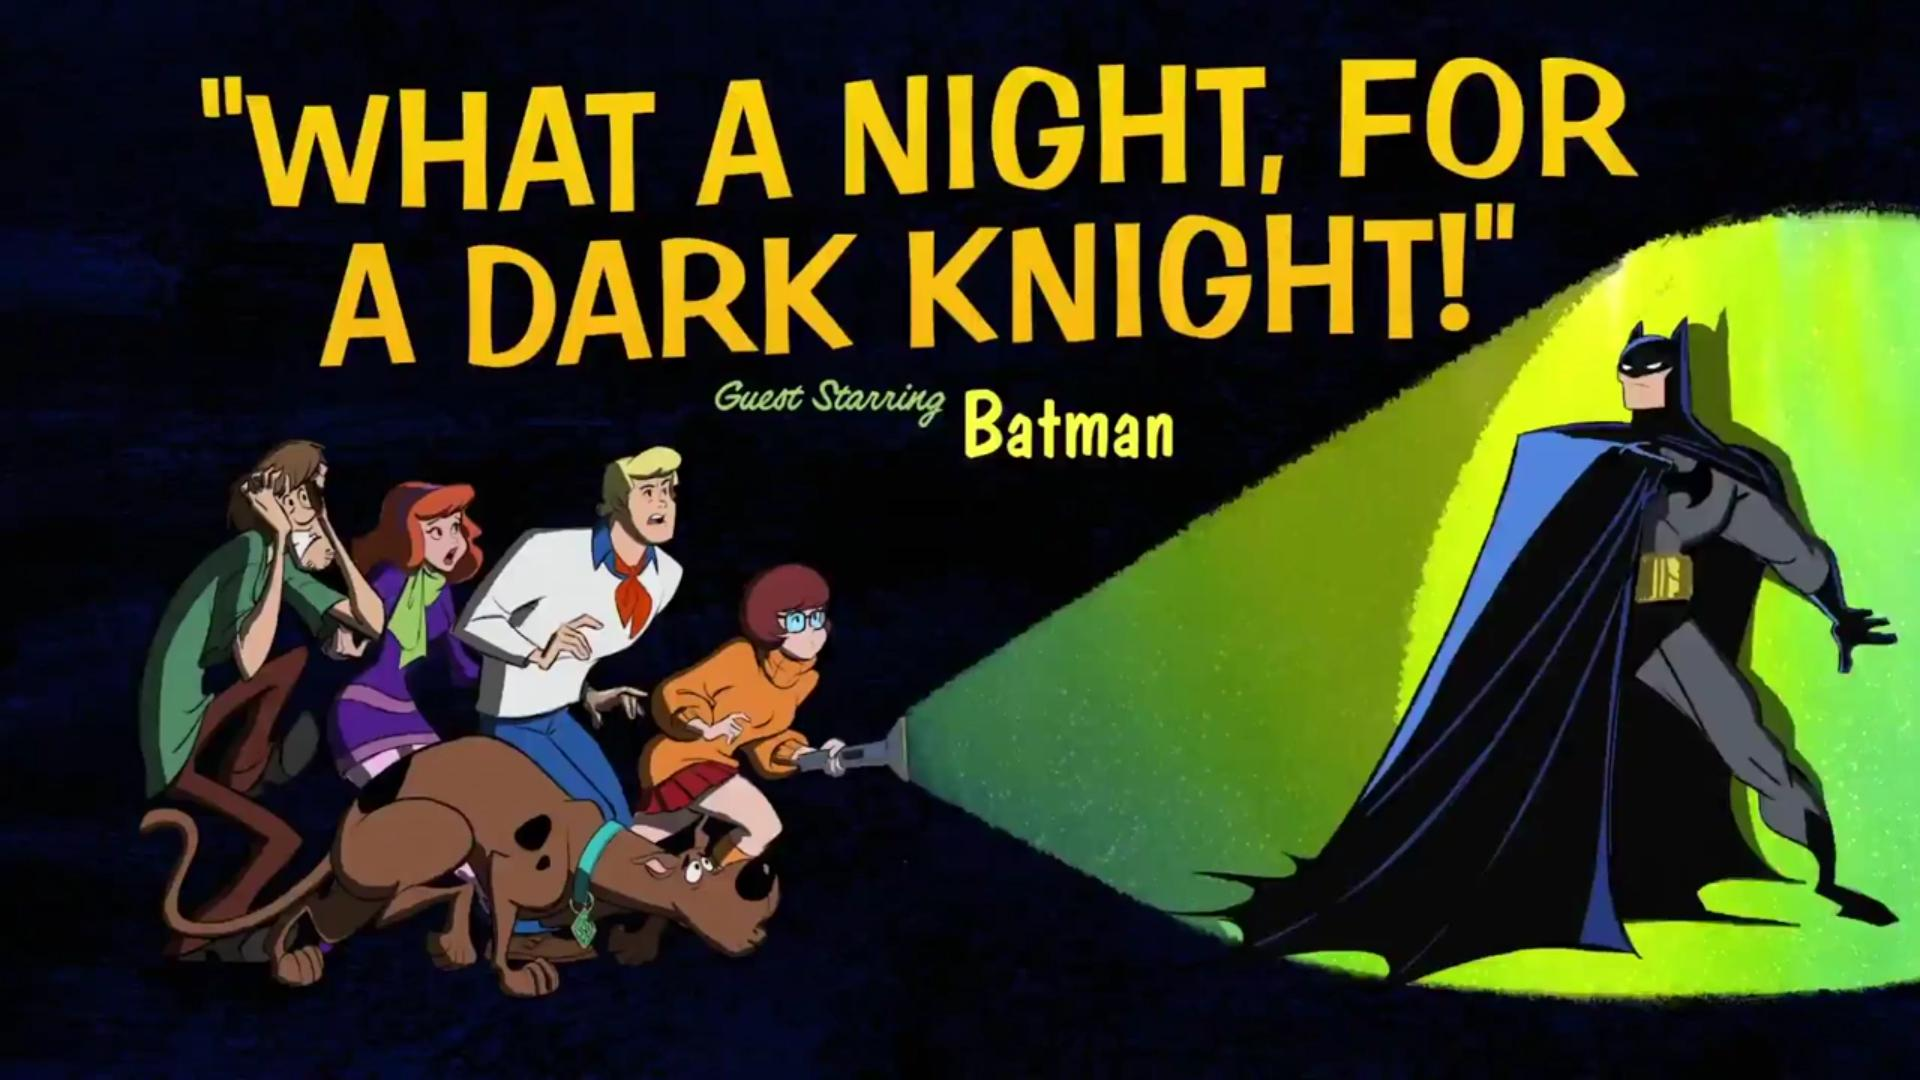 What a Night for a Dark Knight! (2019)